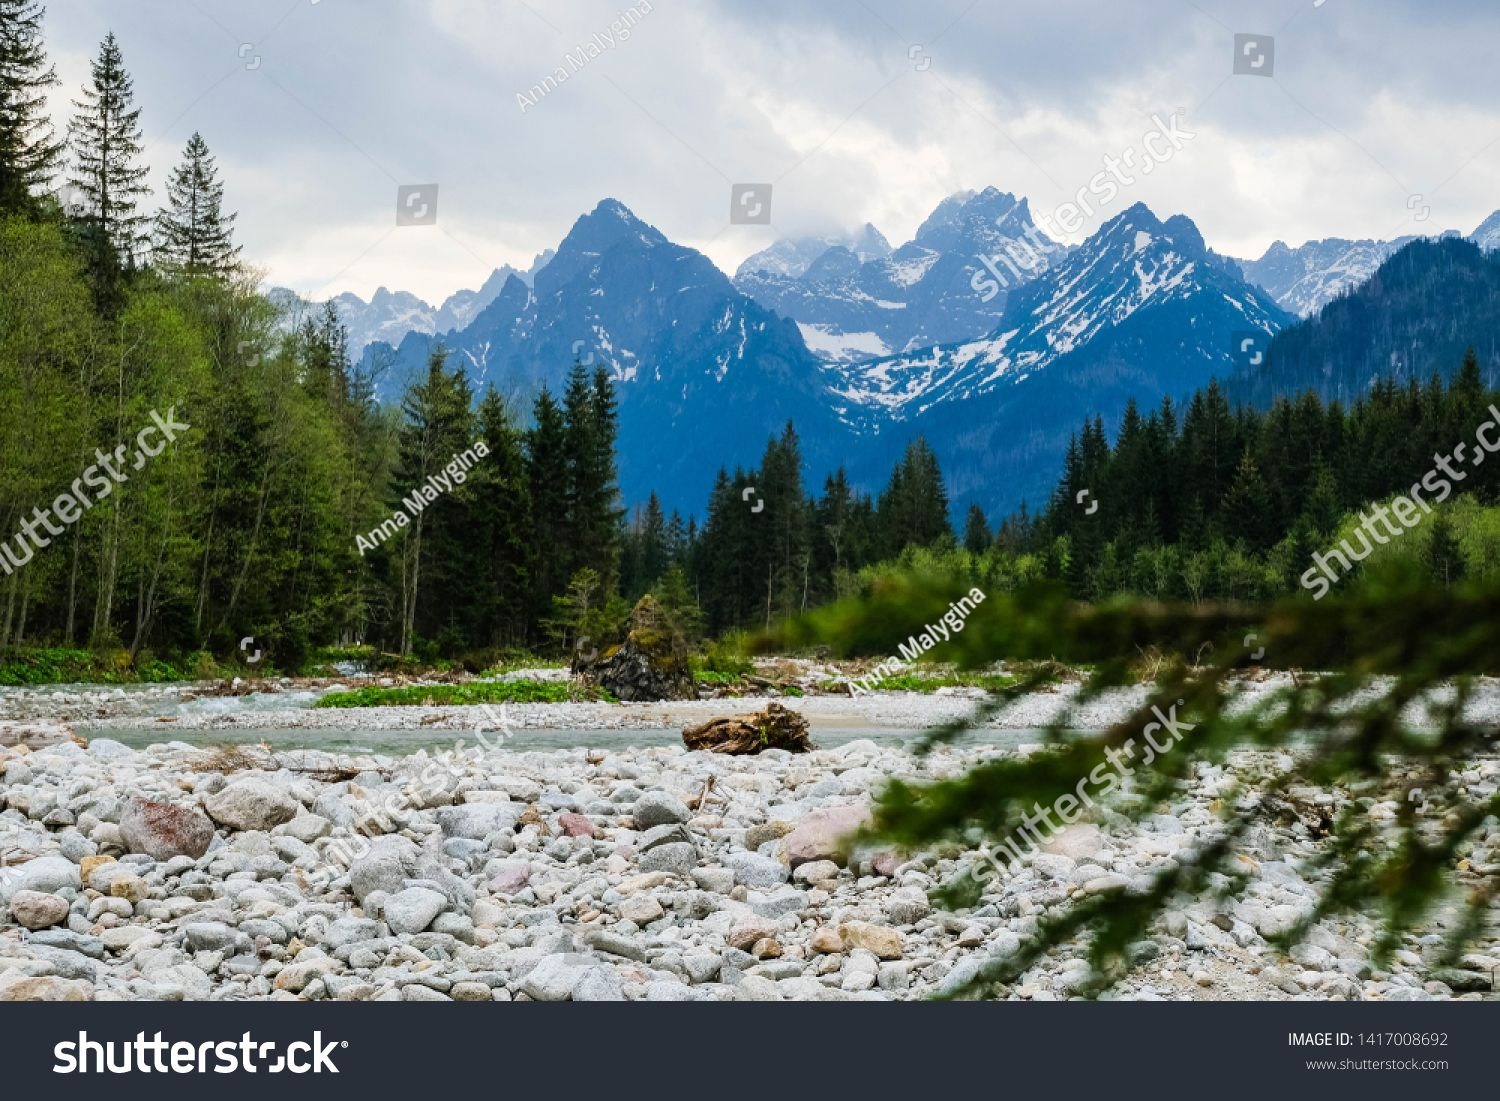 Mountain Landscape With River And Forest Outdoor Mountain View Tara Mountains At National Park Sponsore Mountain Landscape Anime Character Design Landscape